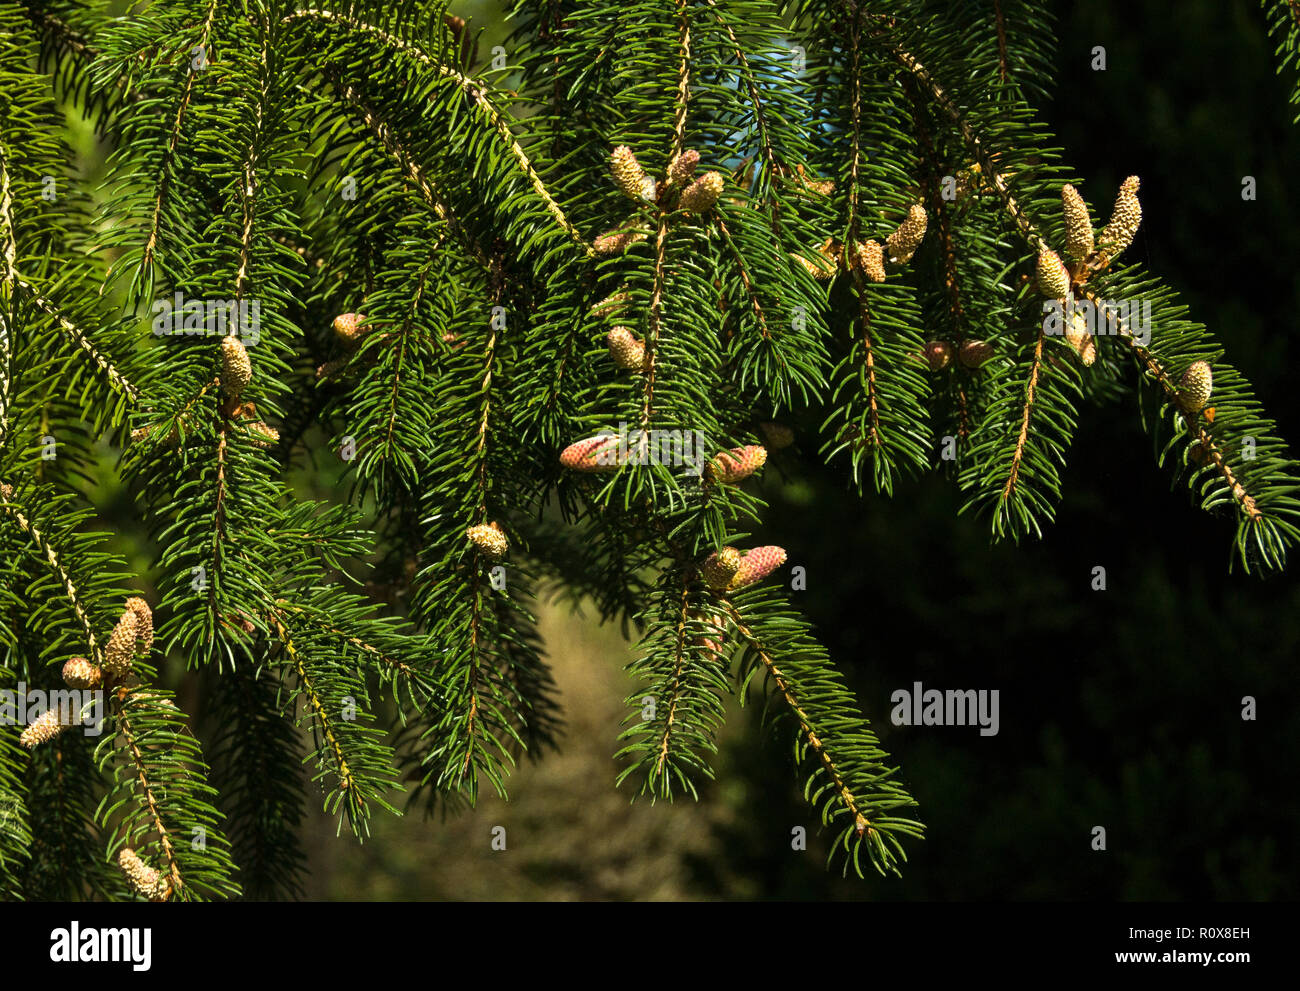 Norway Spruce (Picea abies) in early spring.The male flowers are yellow,the female flowers are pink. - Stock Image